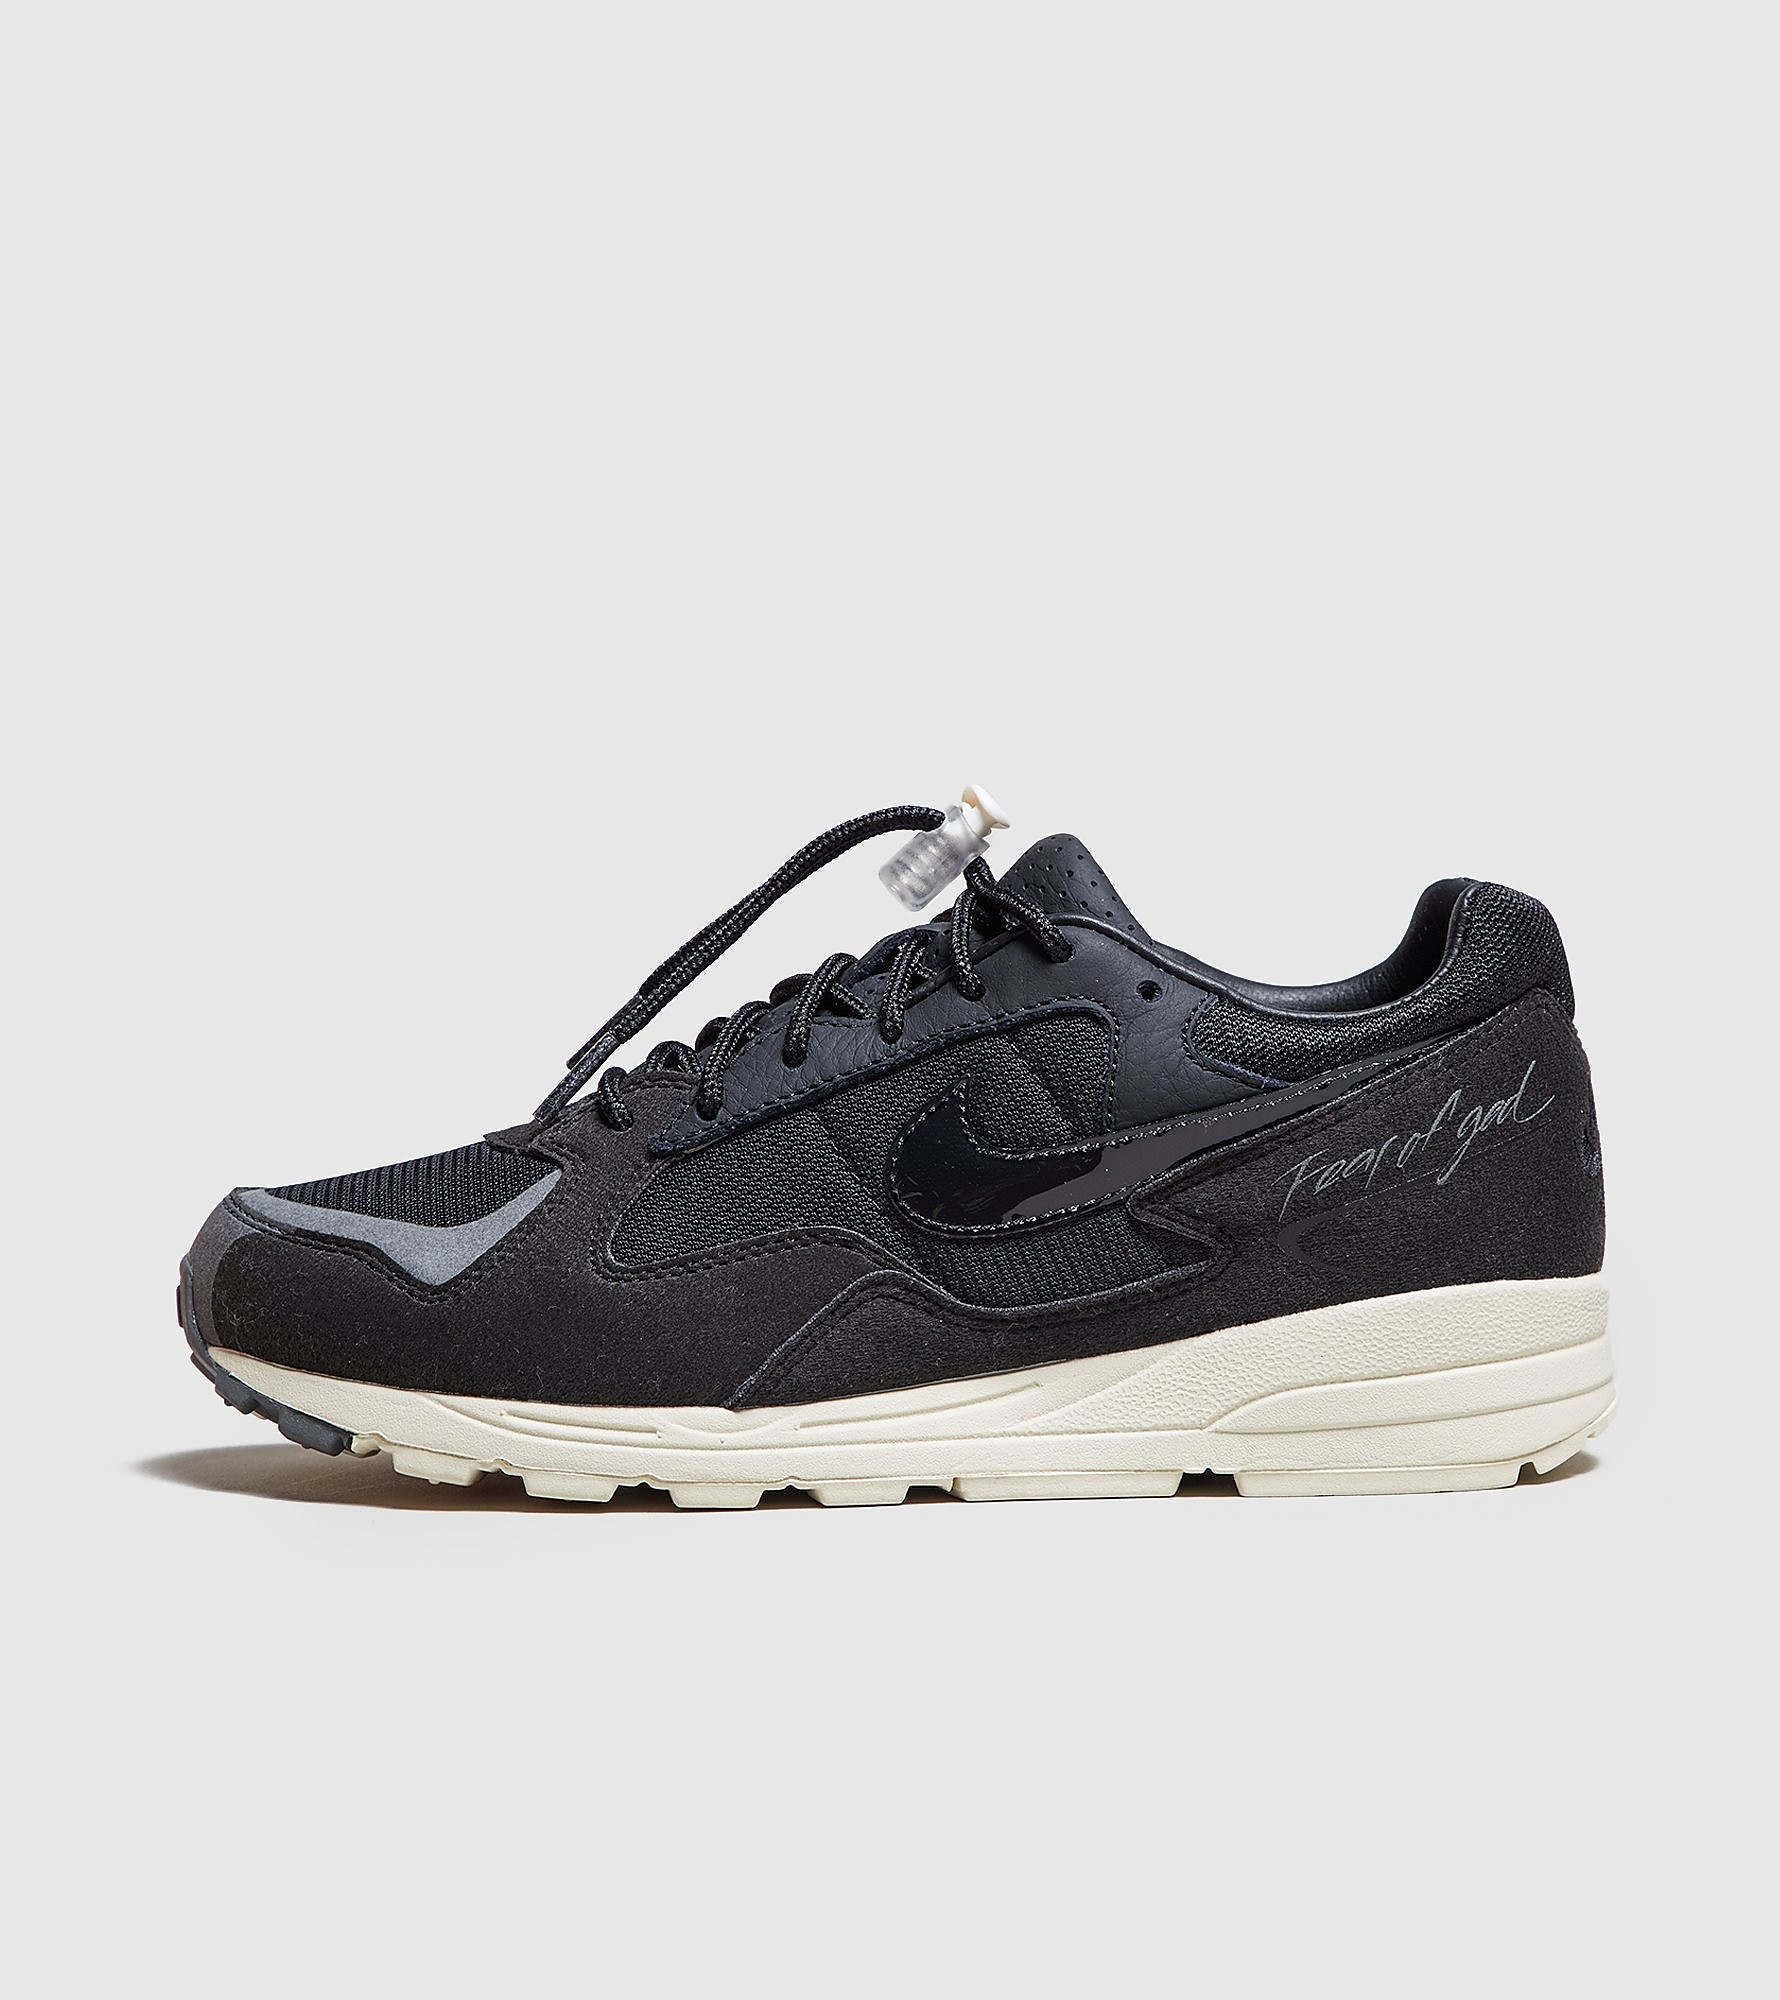 Nike x Fear Of God Skylon II Women's